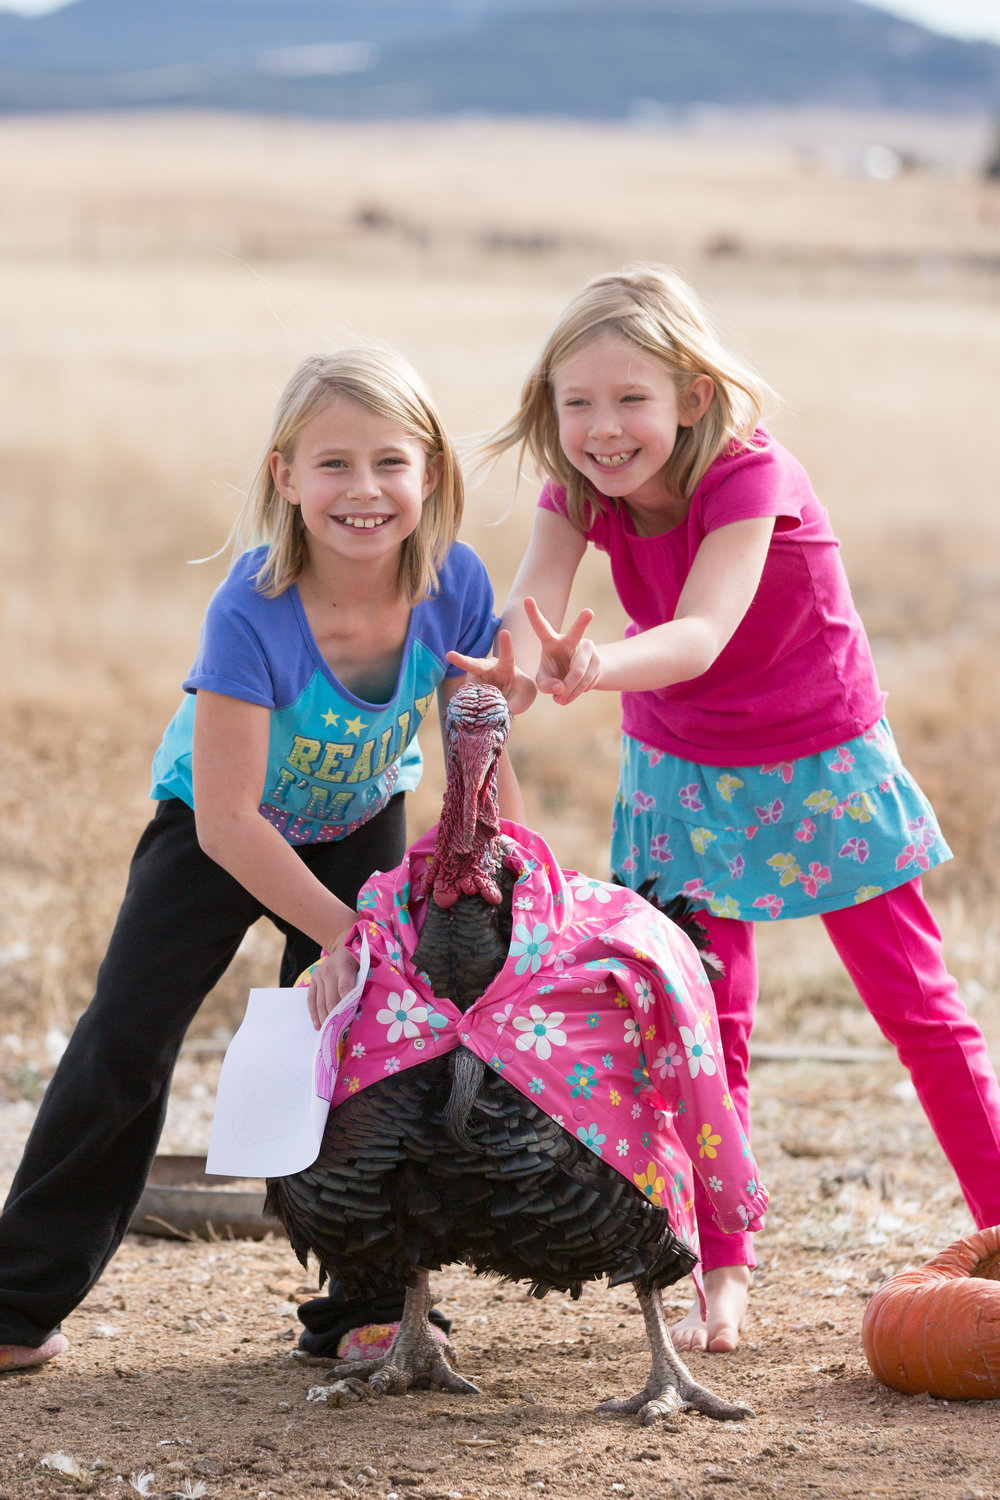 After reading a book about a turkey who dressed up in disguises to trick the farmer, the girls dressed up their own turkey.